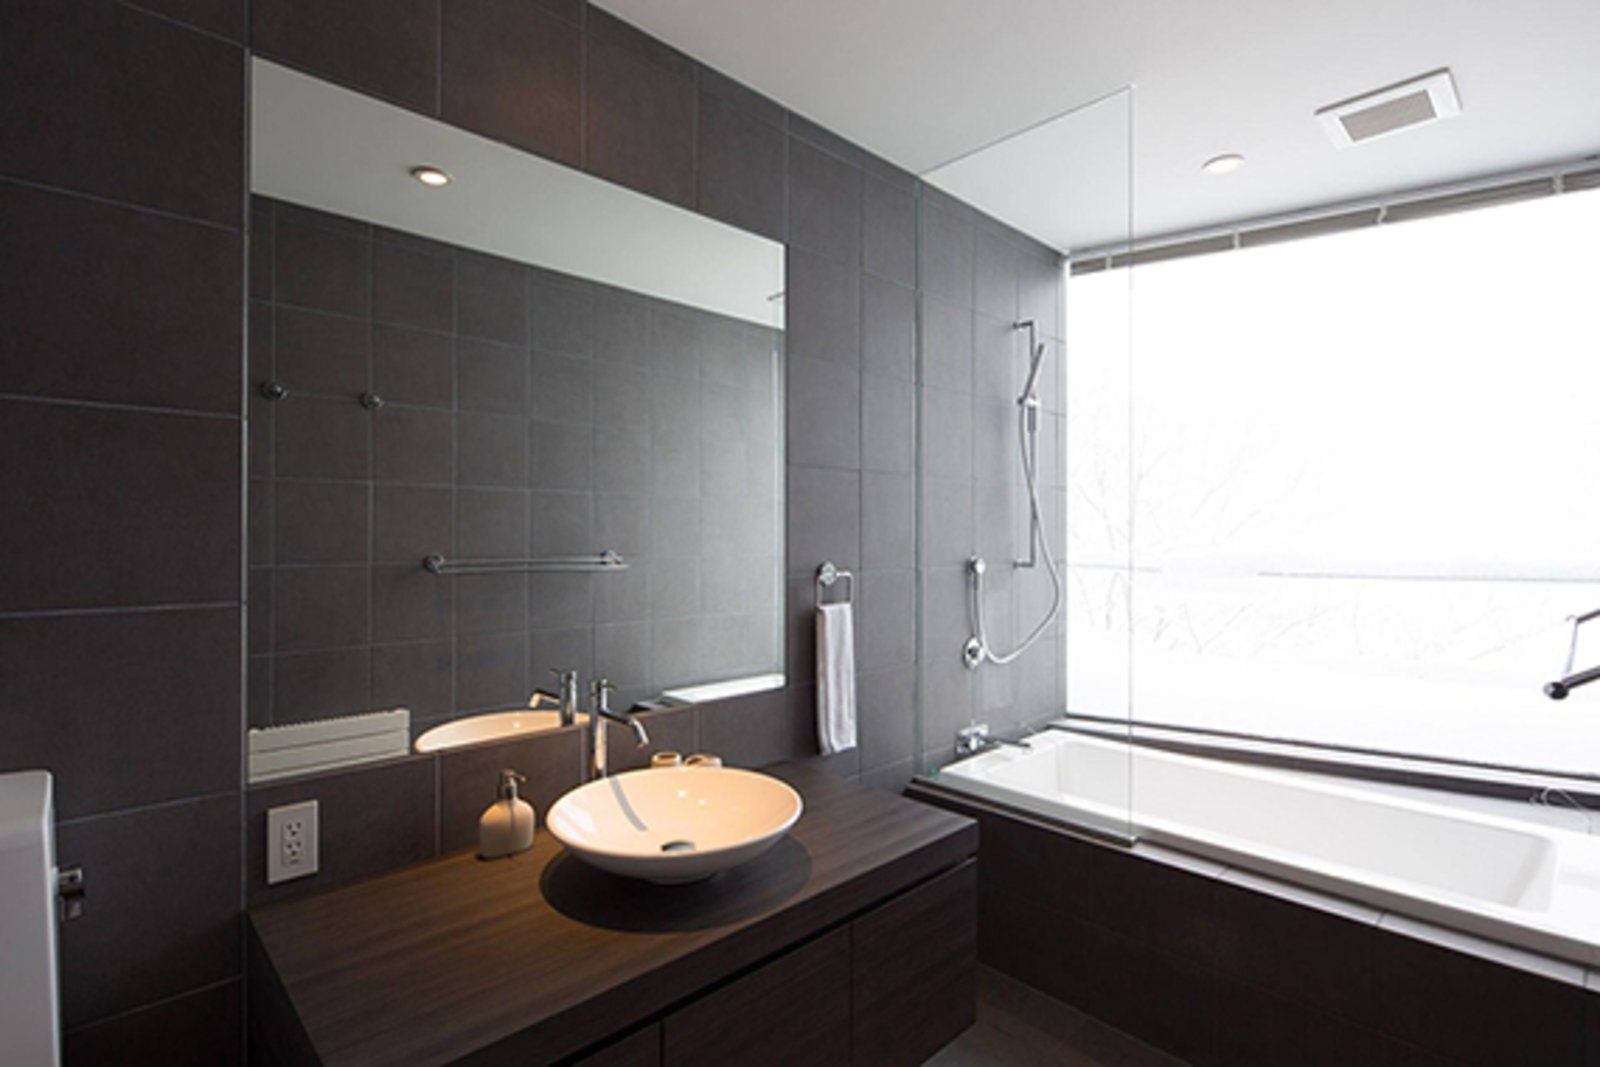 Kawasemi residence bathroom large